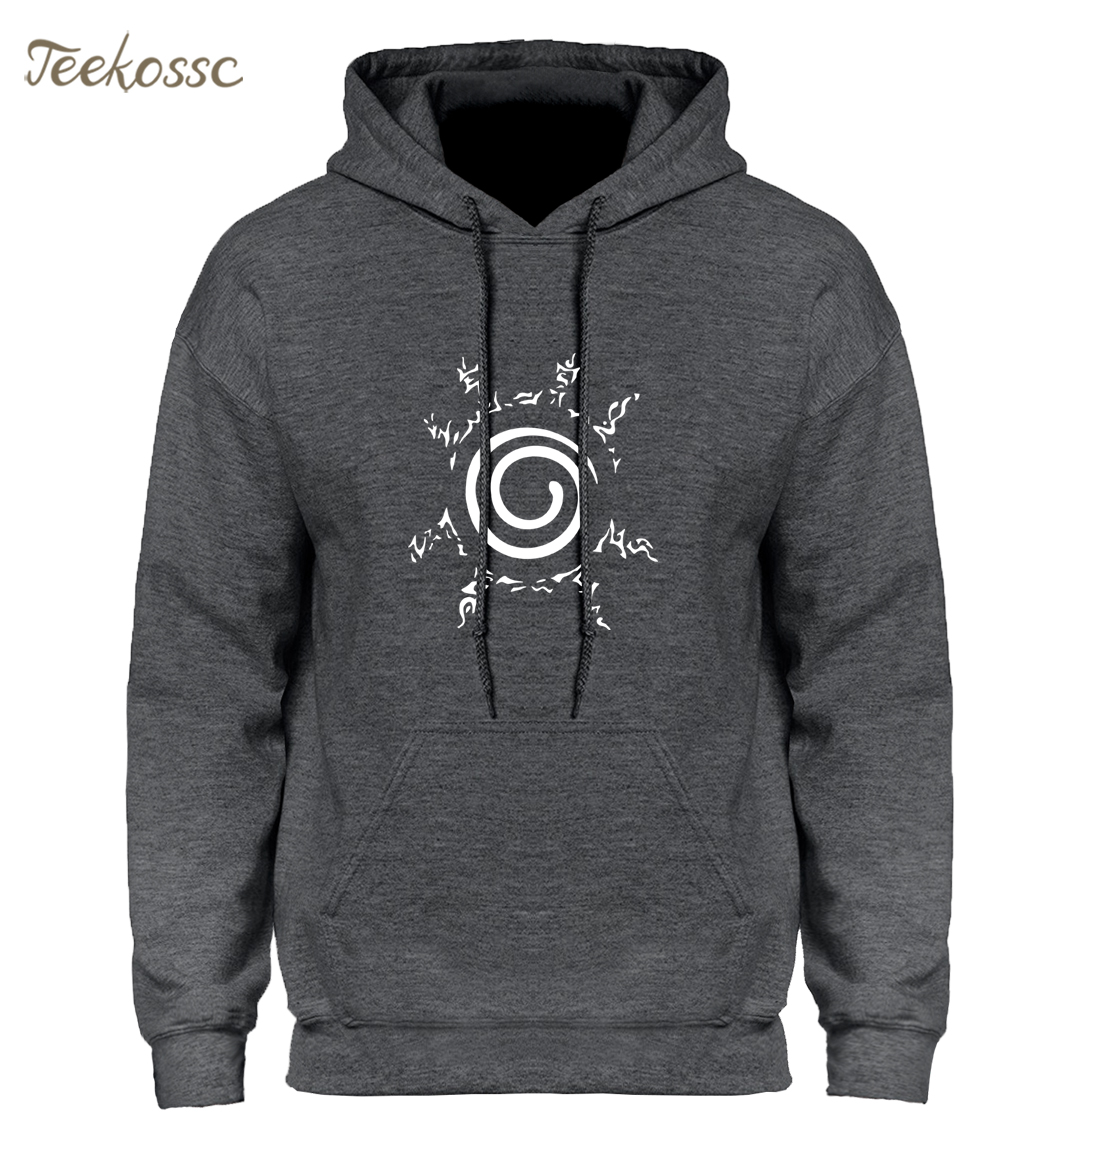 Anime Sweatshirts Naruto Uzumaki Naruto Harajuku Hoodie Hoodies Sweatshirt Men 2018 New Winter Autumn Hooded Japan Cartoon Hoody